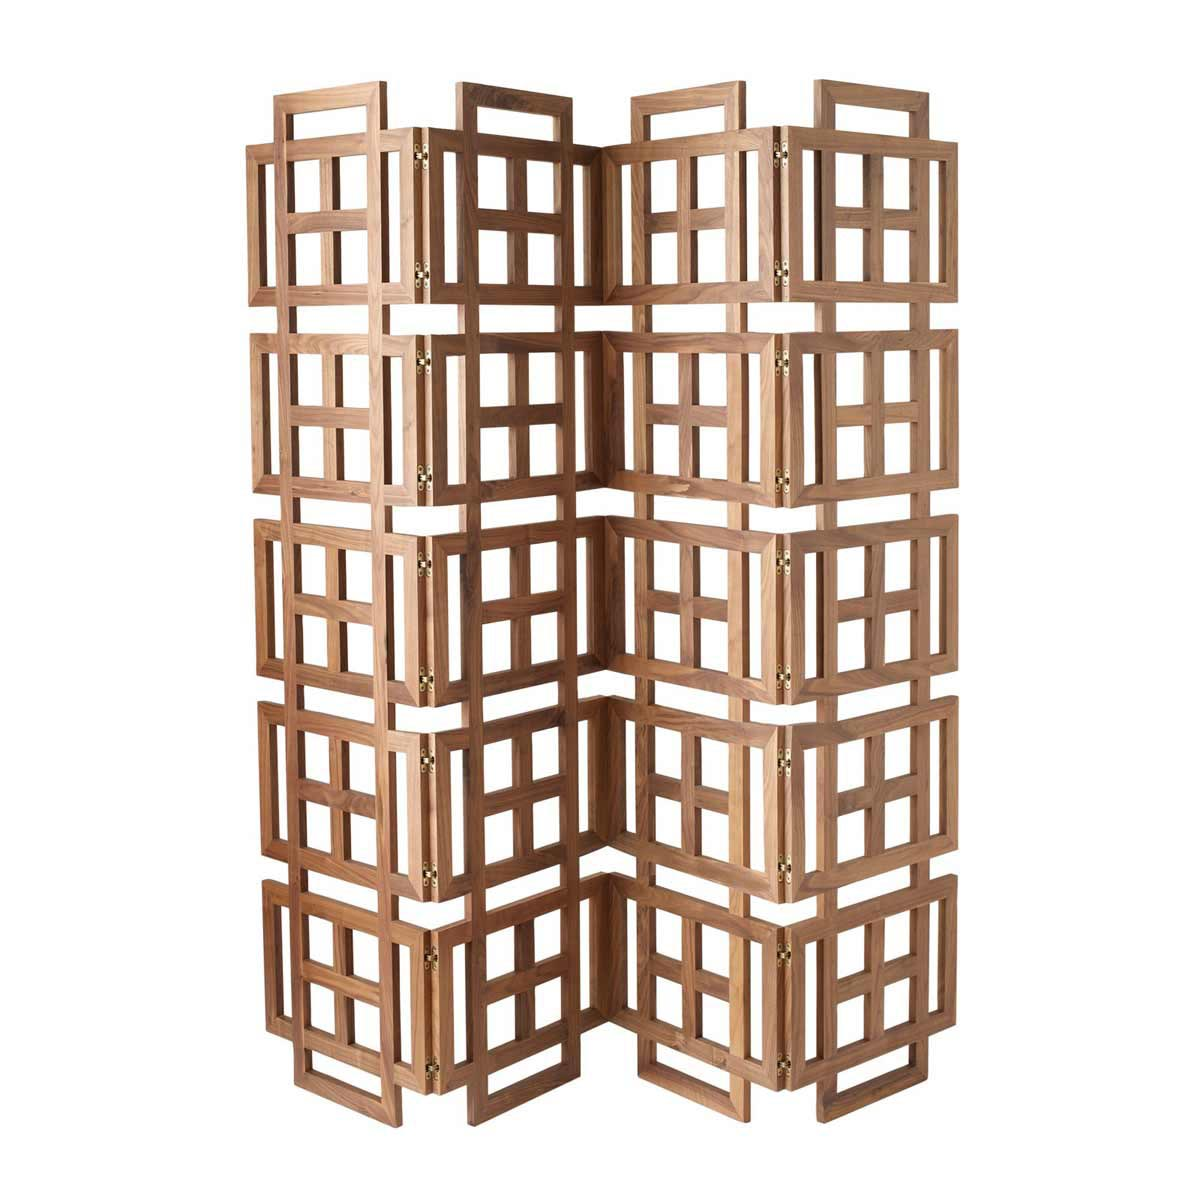 Unique room dividers decorative partitions room dividers pinterest decorative room dividers room - Decorative partitions room divider ...